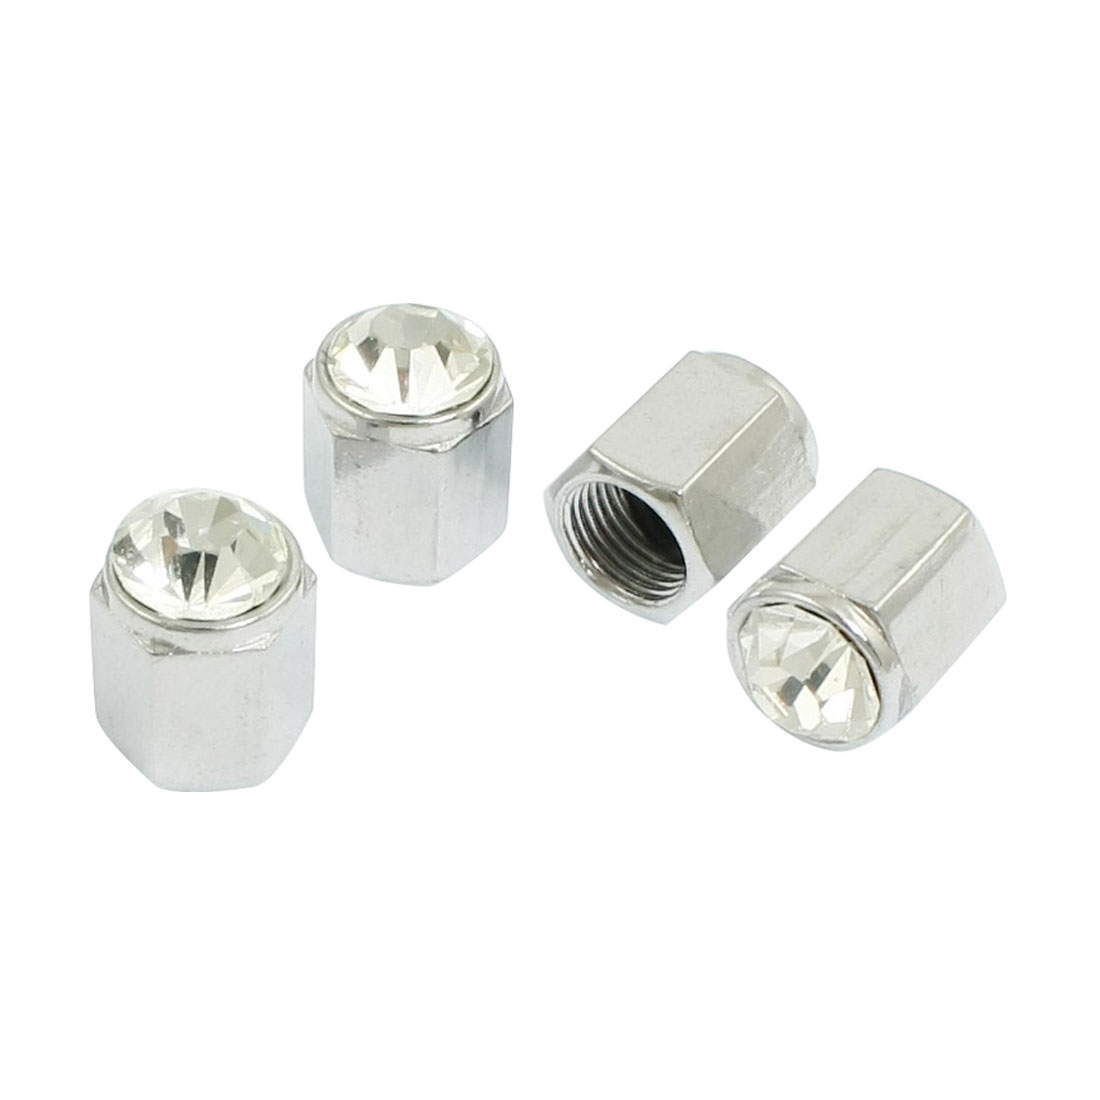 4 Pcs Car Vehicle Clear Rhinestone Inlaid Hexagon Tire Valve Cap